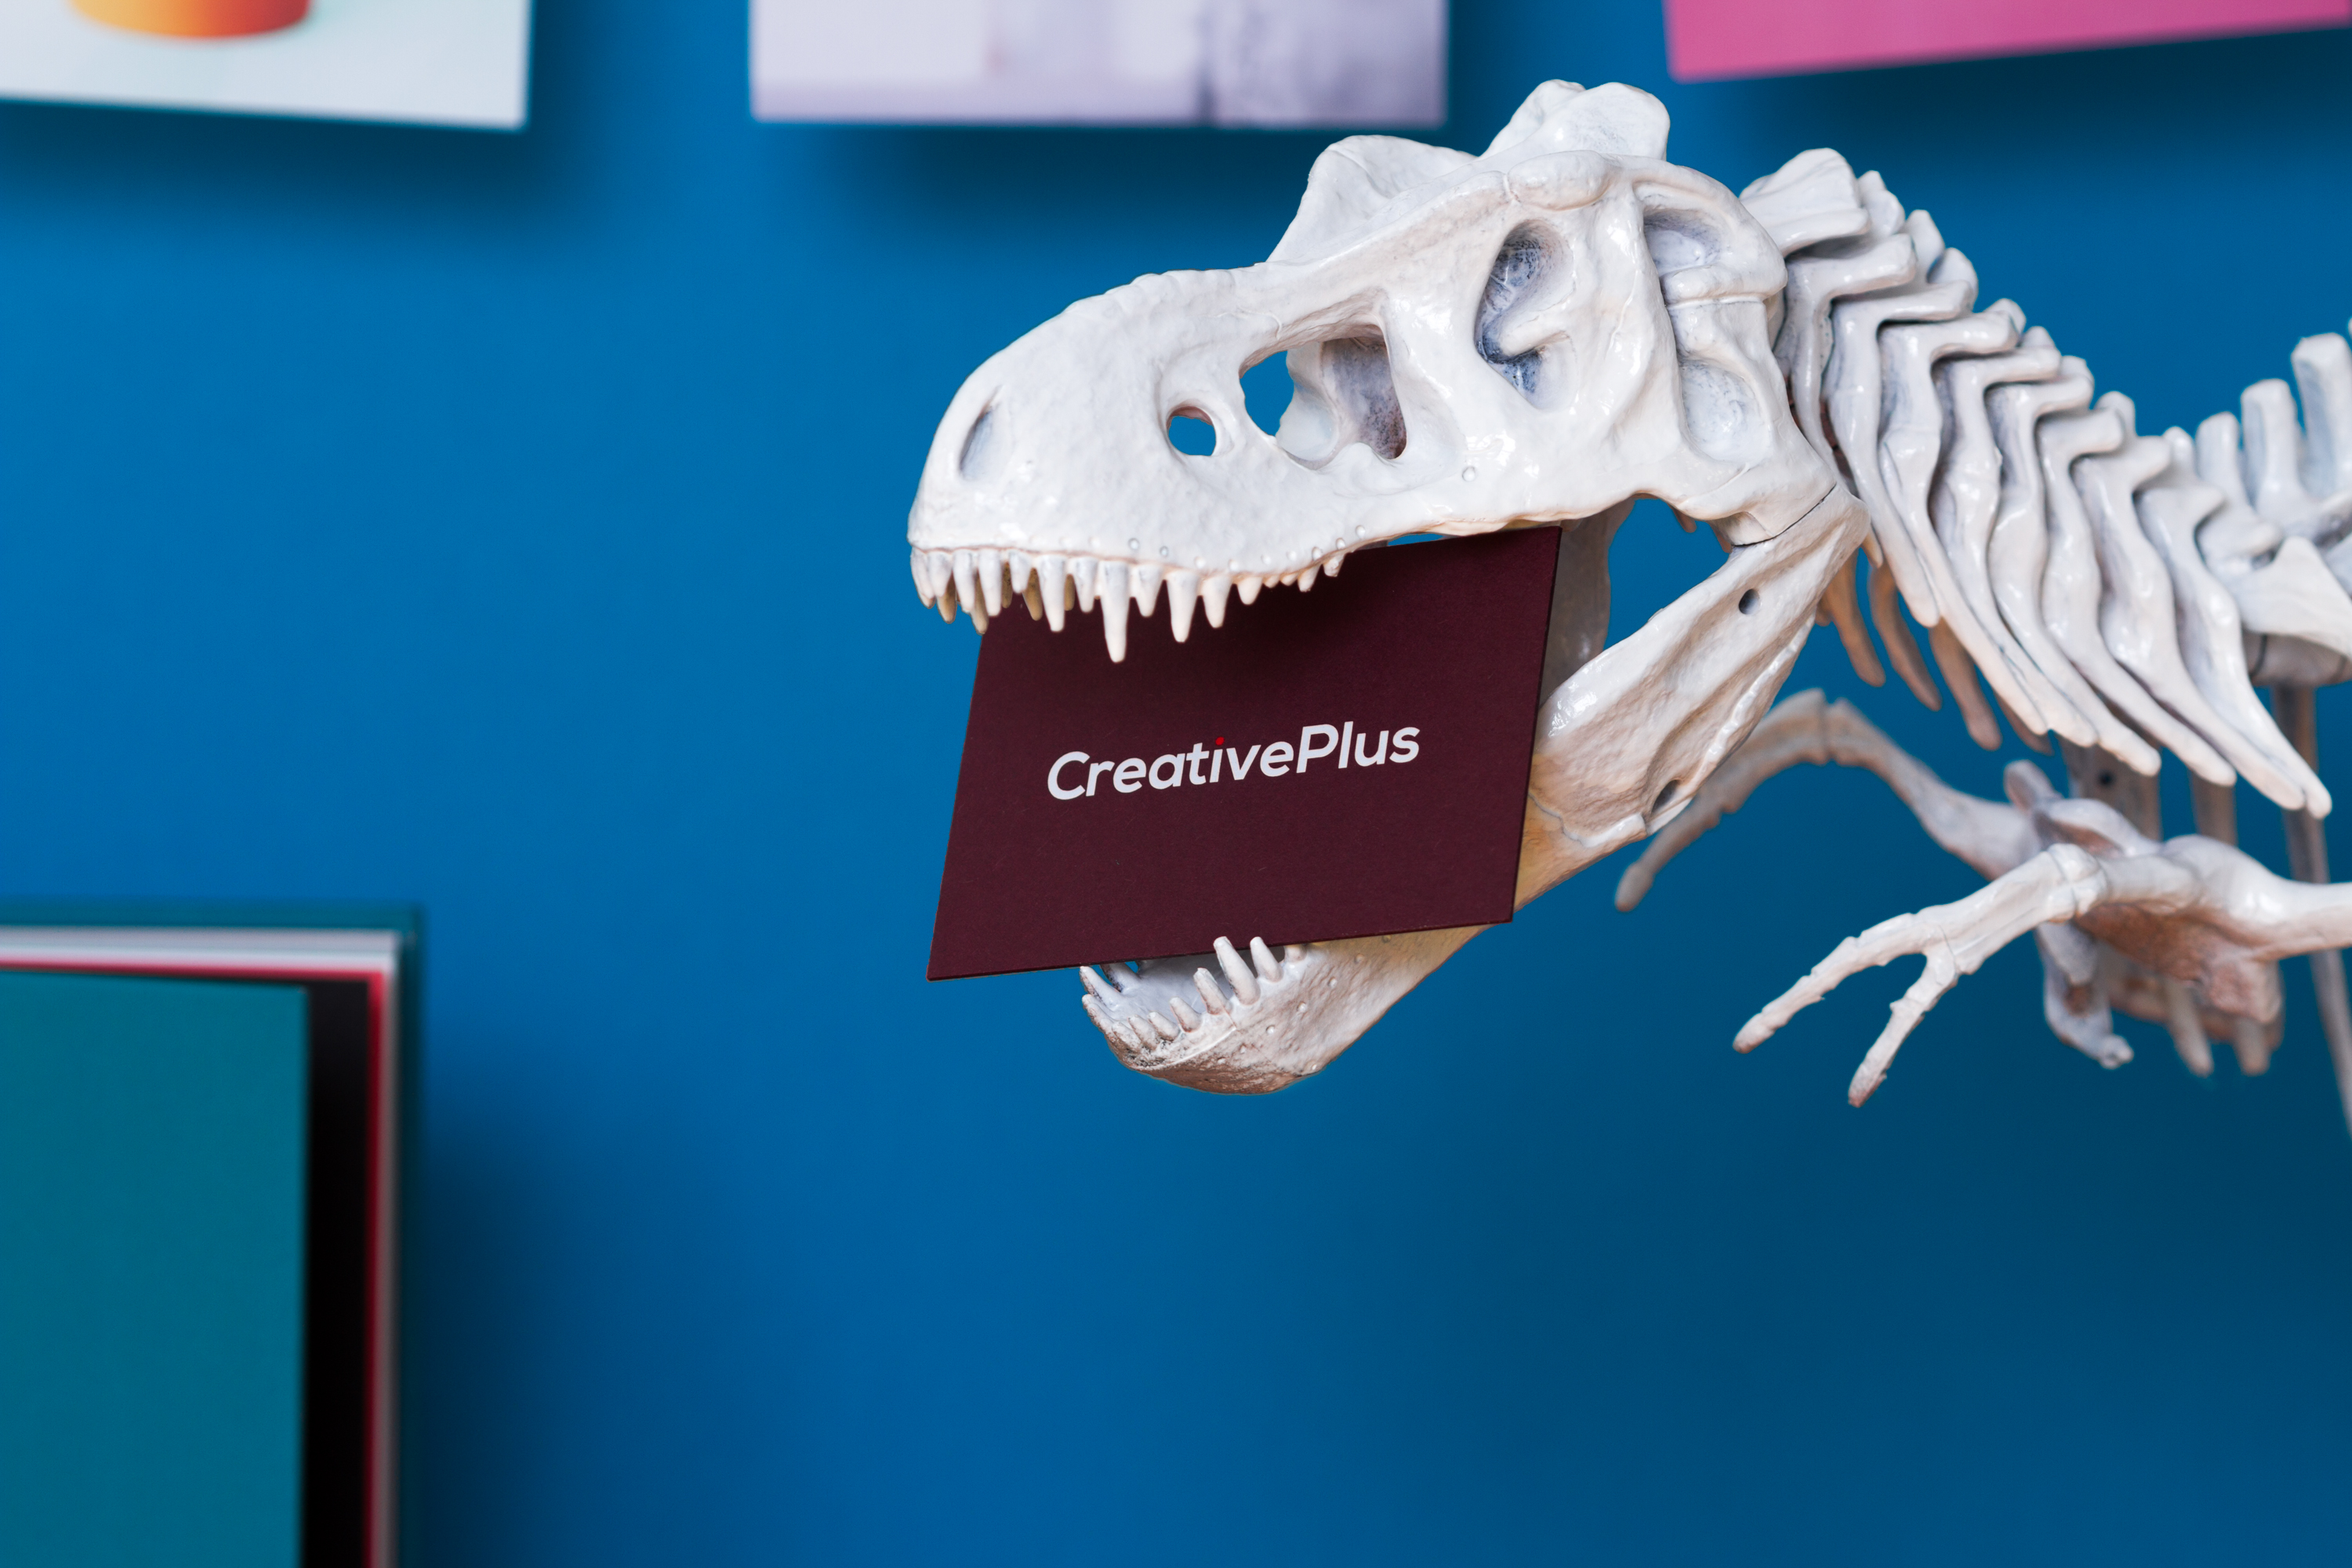 Dinosaur skeleton biting a business card, representing bespoke printing services offered by Hatch